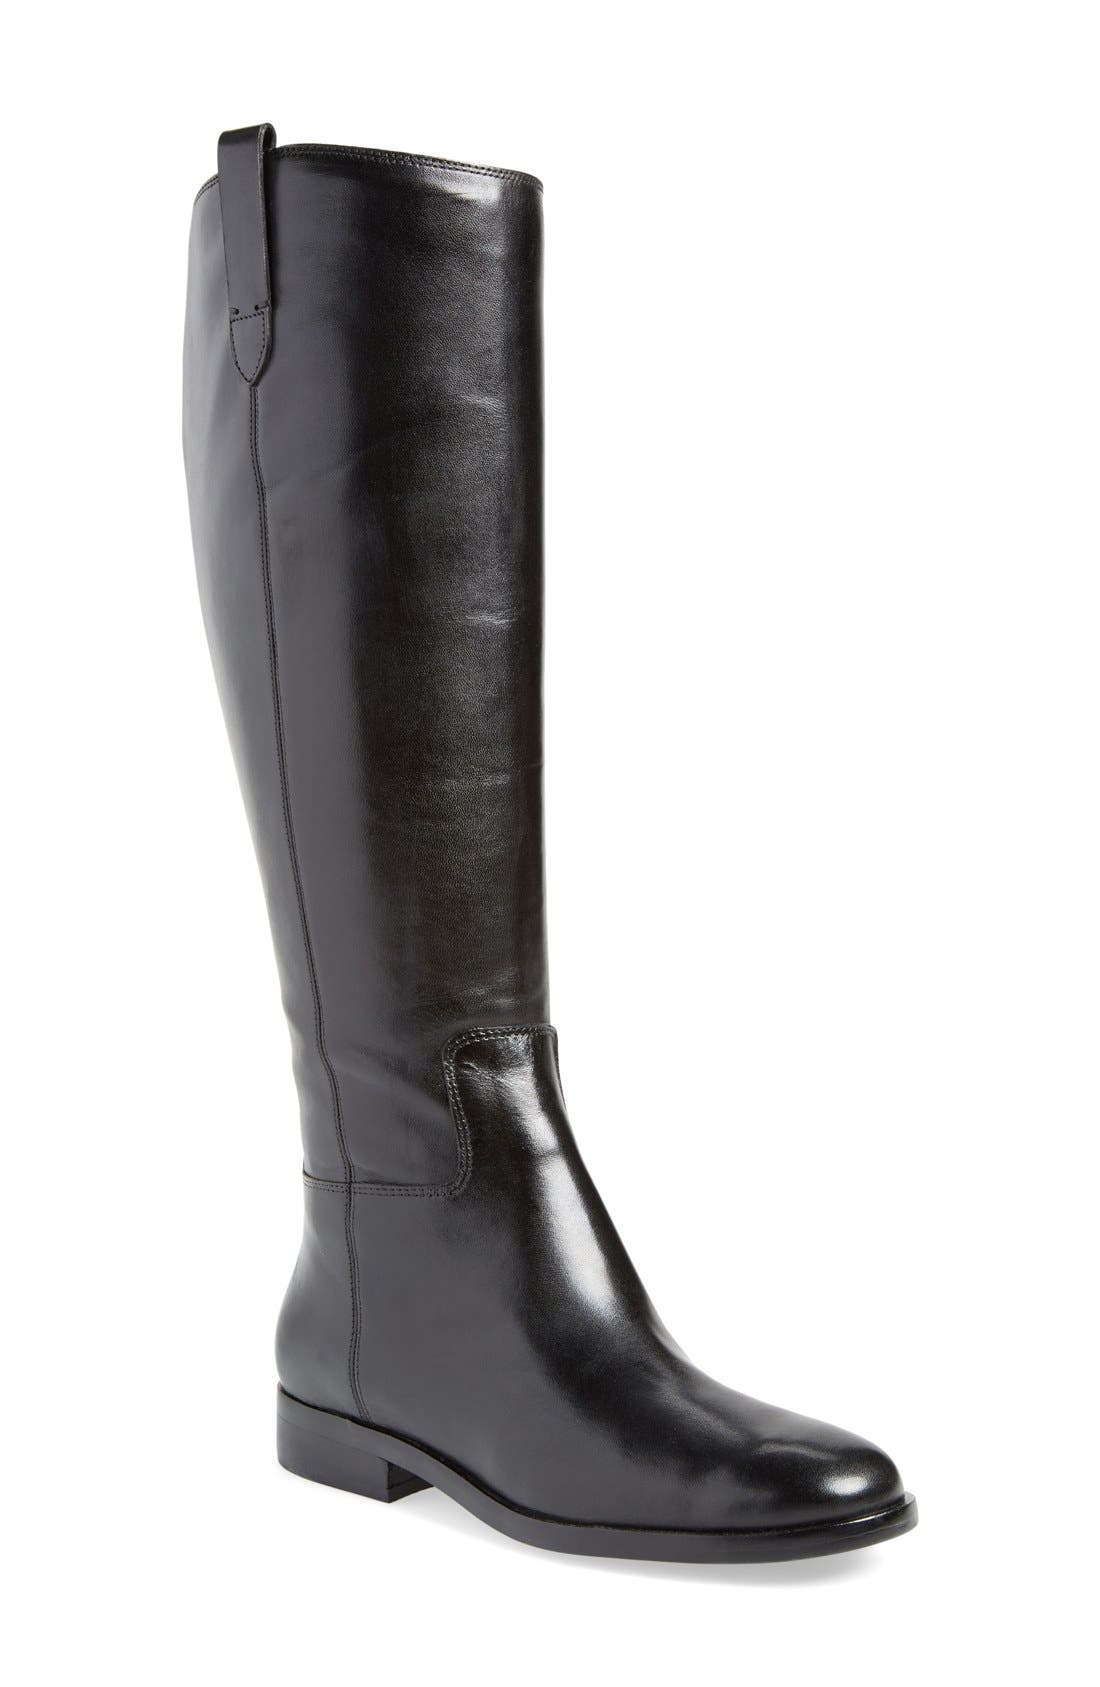 Main Image - Ivanka Trump 'Addee' Tall Riding Boot (Women)